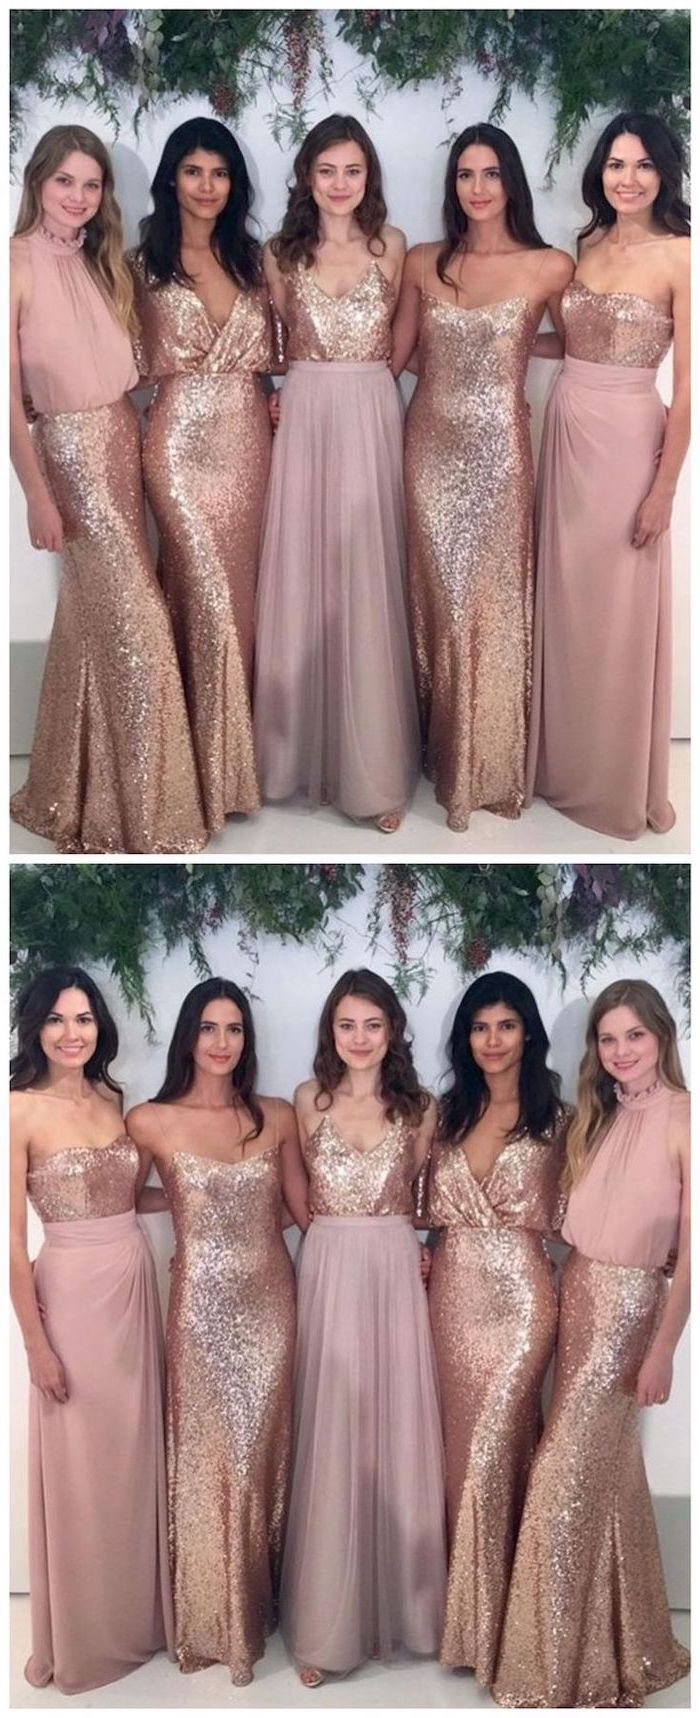 beaded bridesmaid dresses, rose gold, strapless dresses, sequins and chiffon